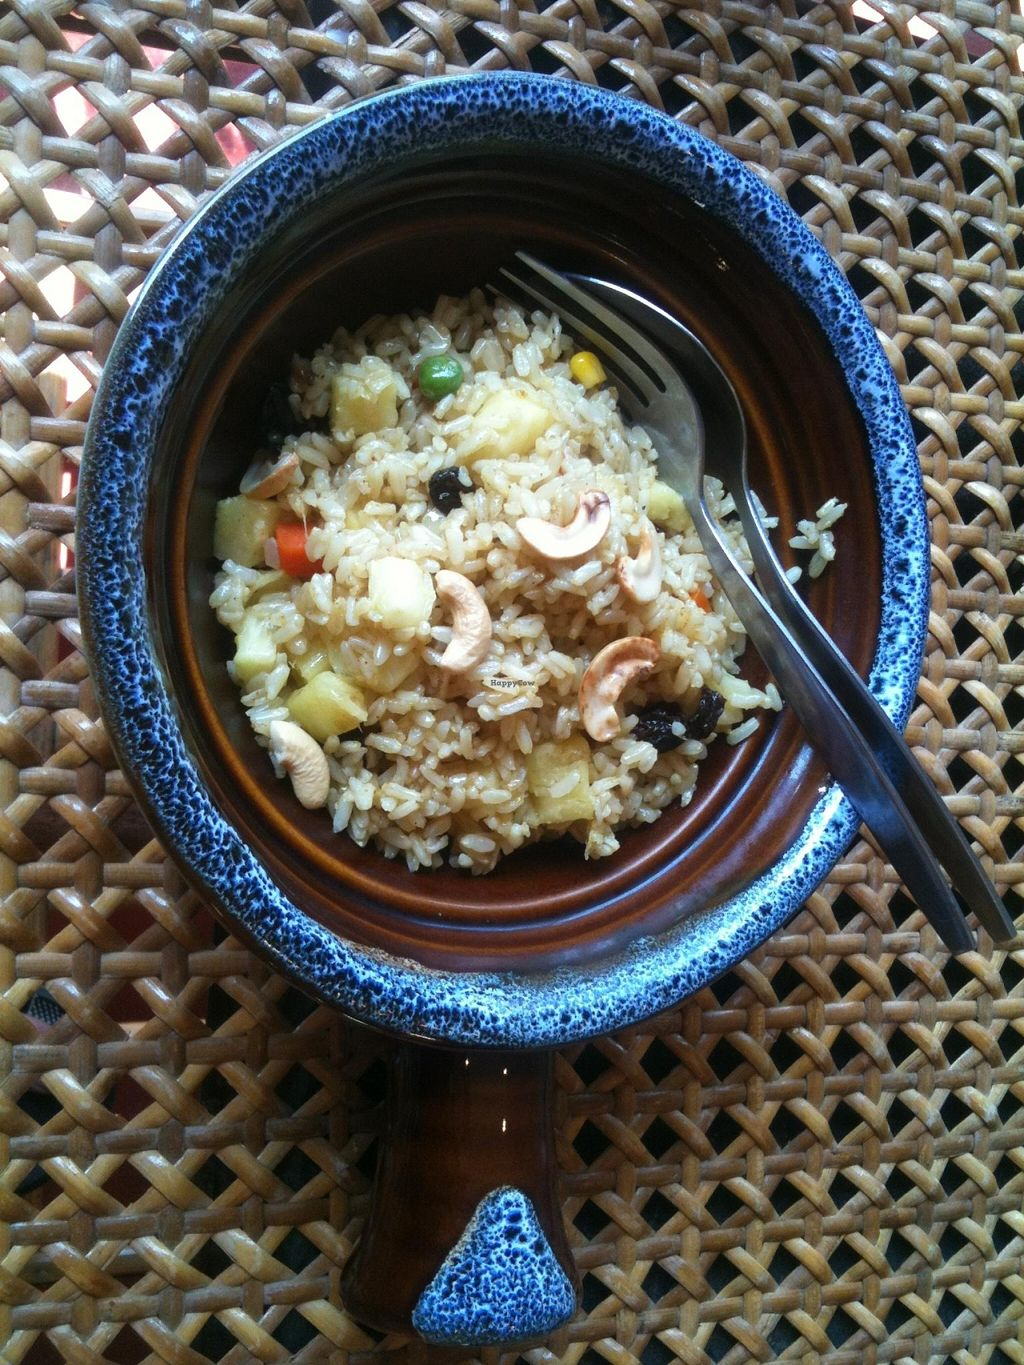 """Photo of Fuang Vegetarian  by <a href=""""/members/profile/CaluCalu"""">CaluCalu</a> <br/>Baked Rice with pineapple 60 baht <br/> February 3, 2016  - <a href='/contact/abuse/image/40611/134823'>Report</a>"""